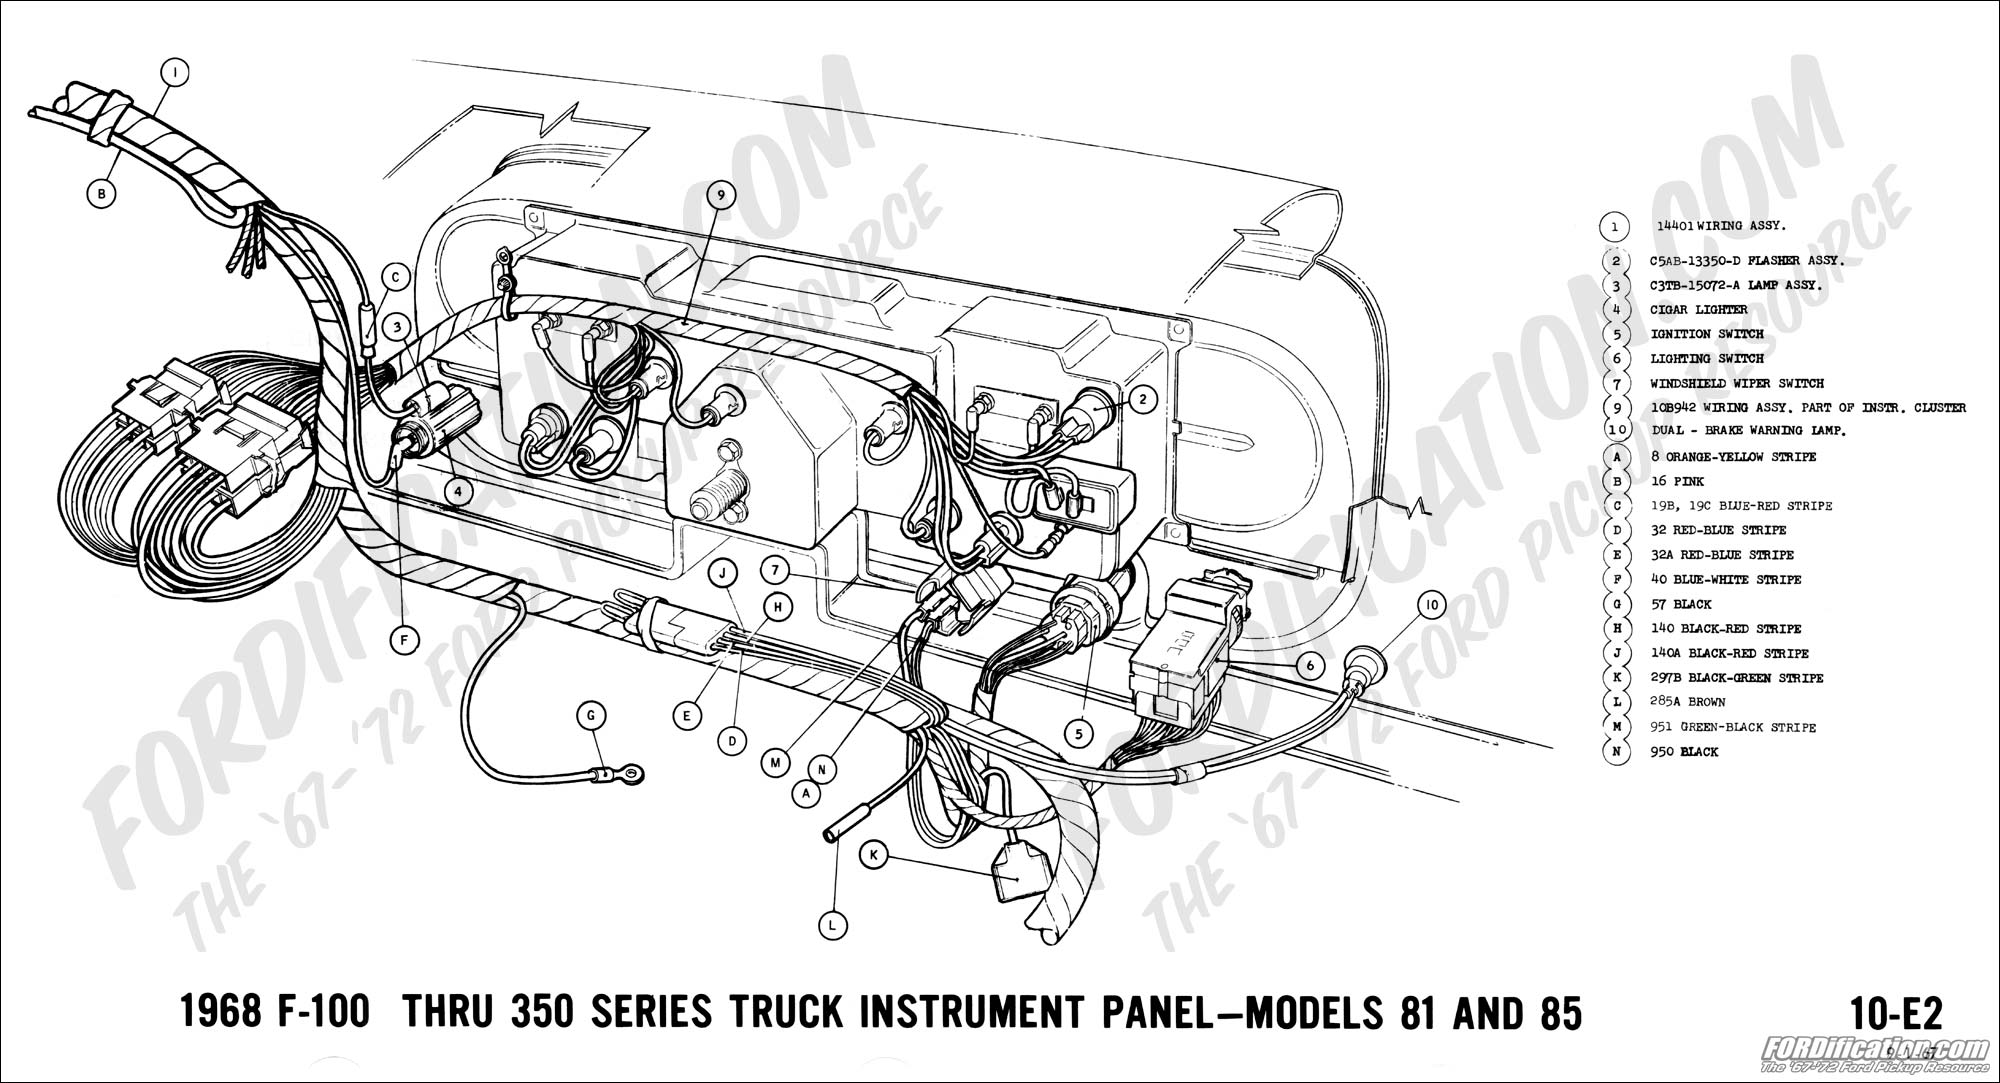 68 04 ford truck technical drawings and schematics section h wiring 68 mustang alternator wiring diagram at nearapp.co